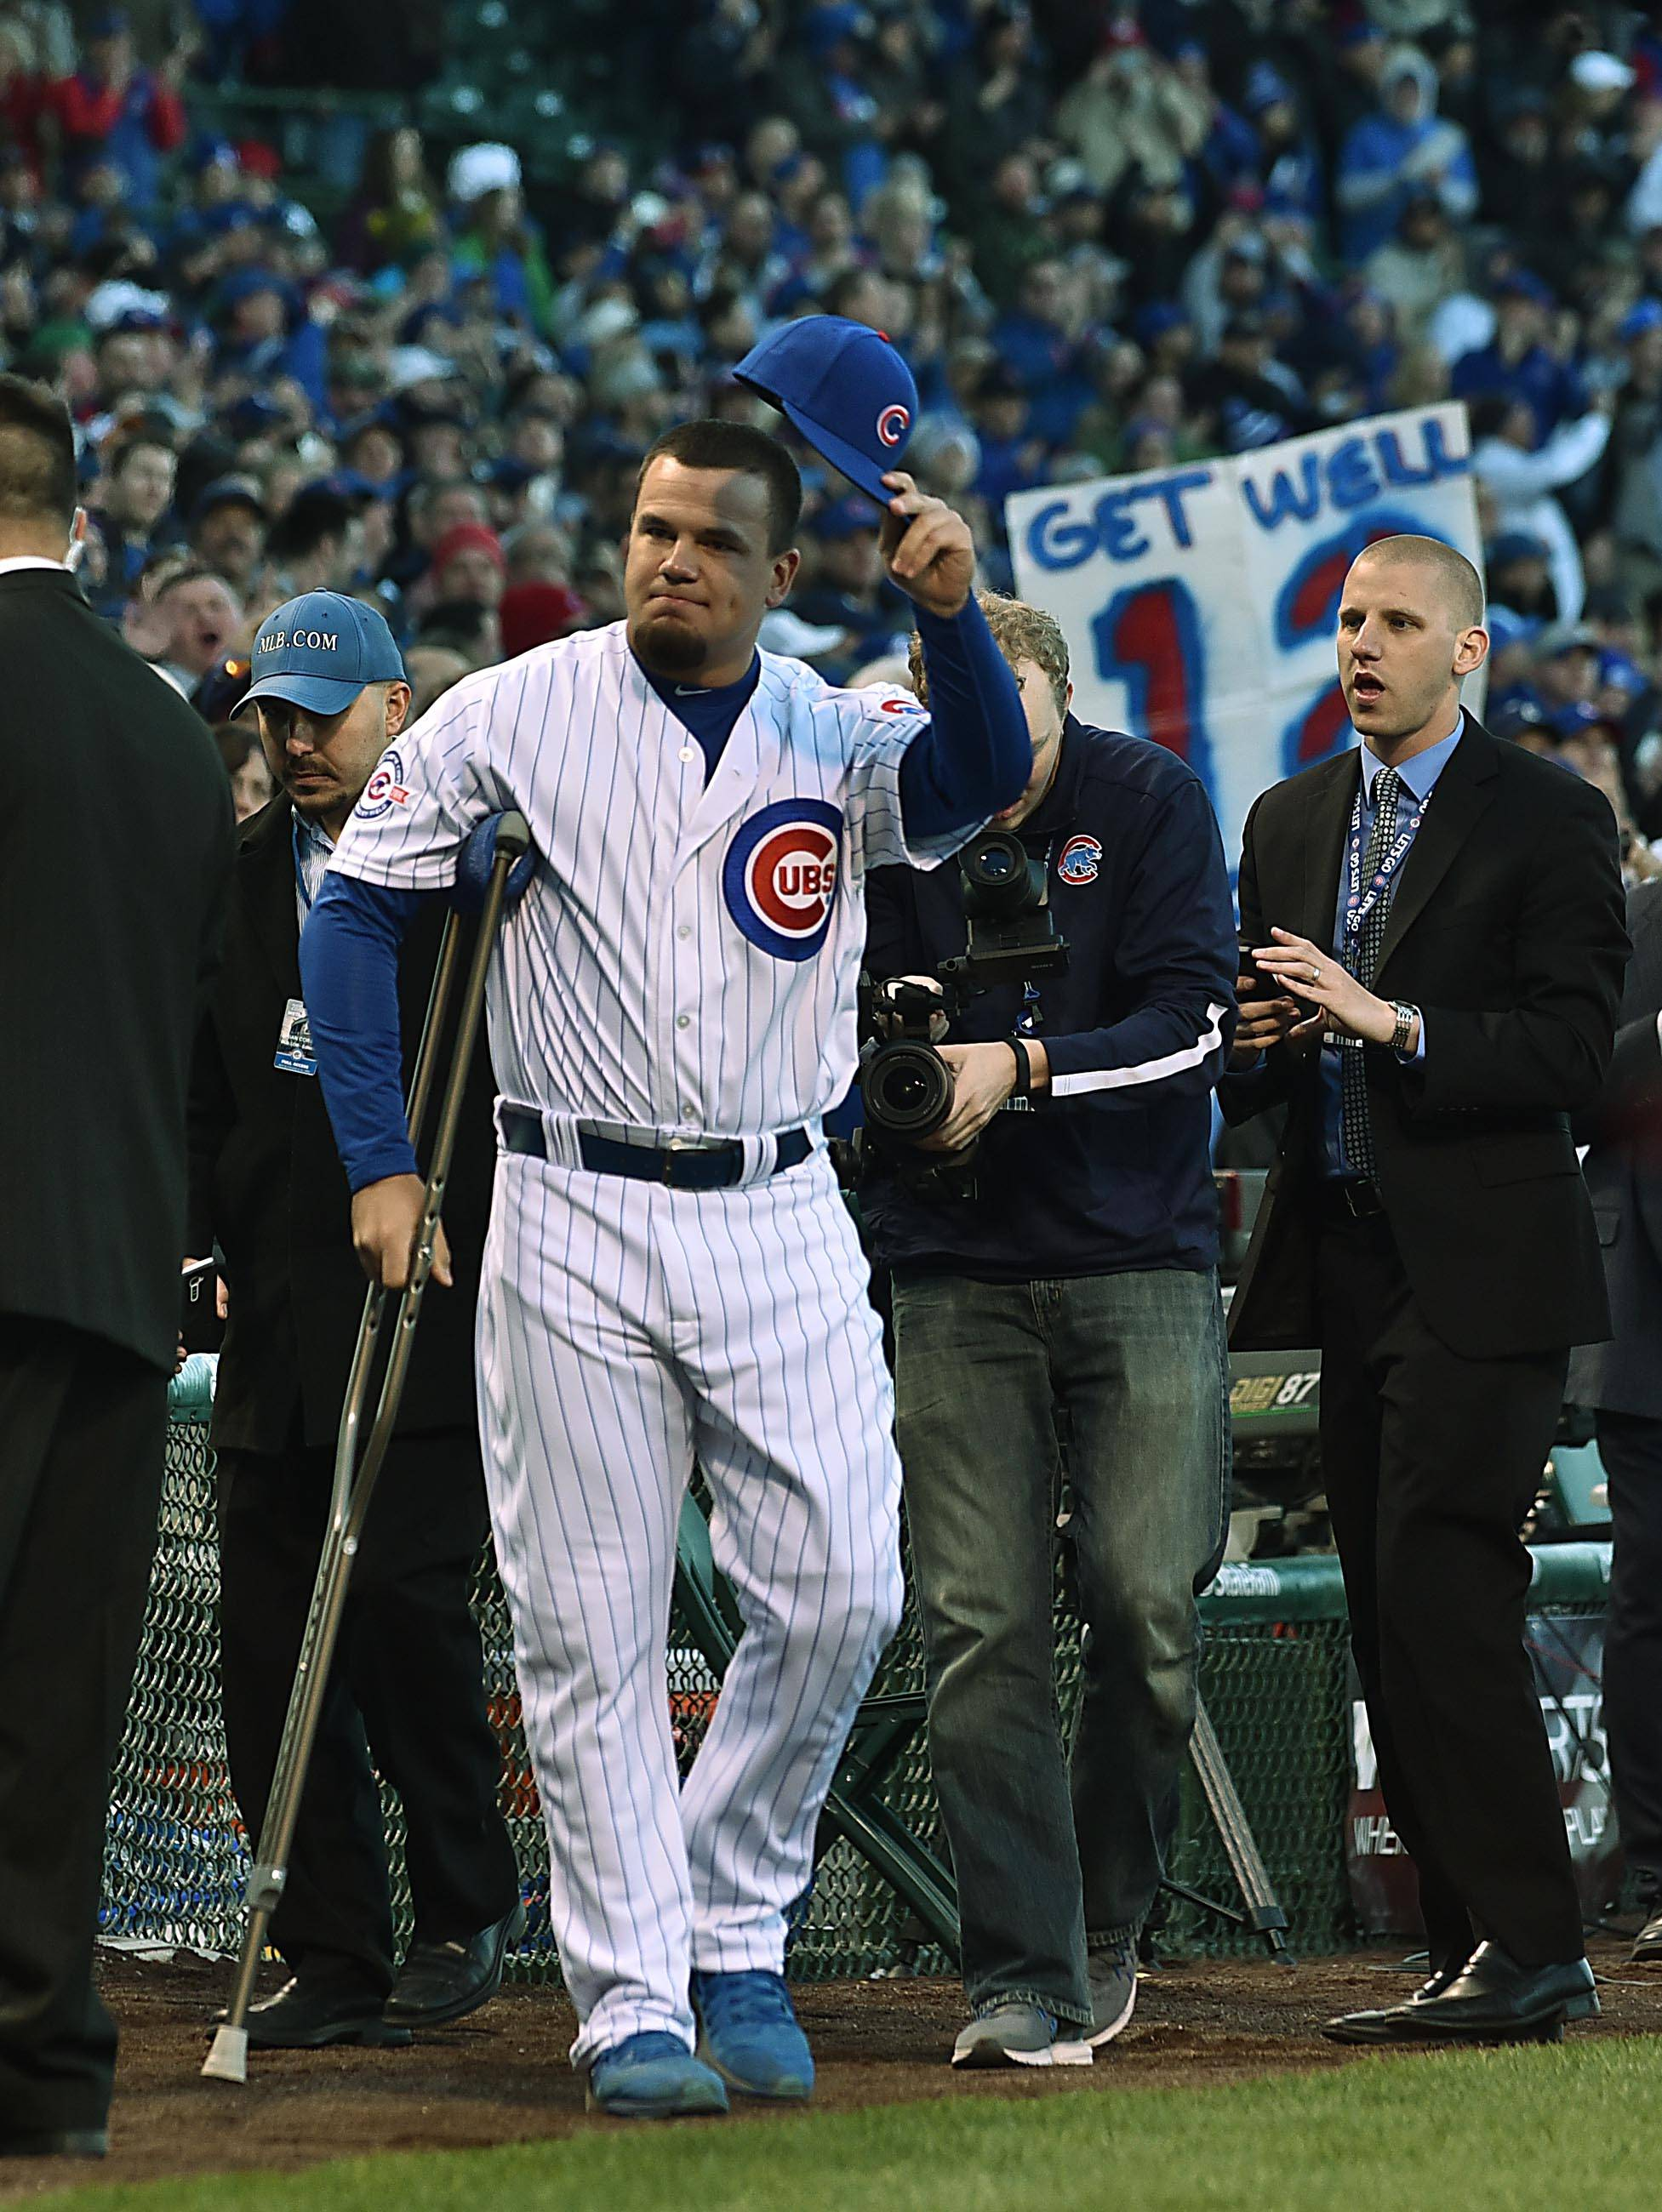 Chicago Cubs left fielder Kyle Schwarber tips his hat to the crowd as his comes on to the field using crutches on opening day at Wrigley Field in Chicago. Schwarber missed the entire regular season, but returned to help the Cubs win the World Series.